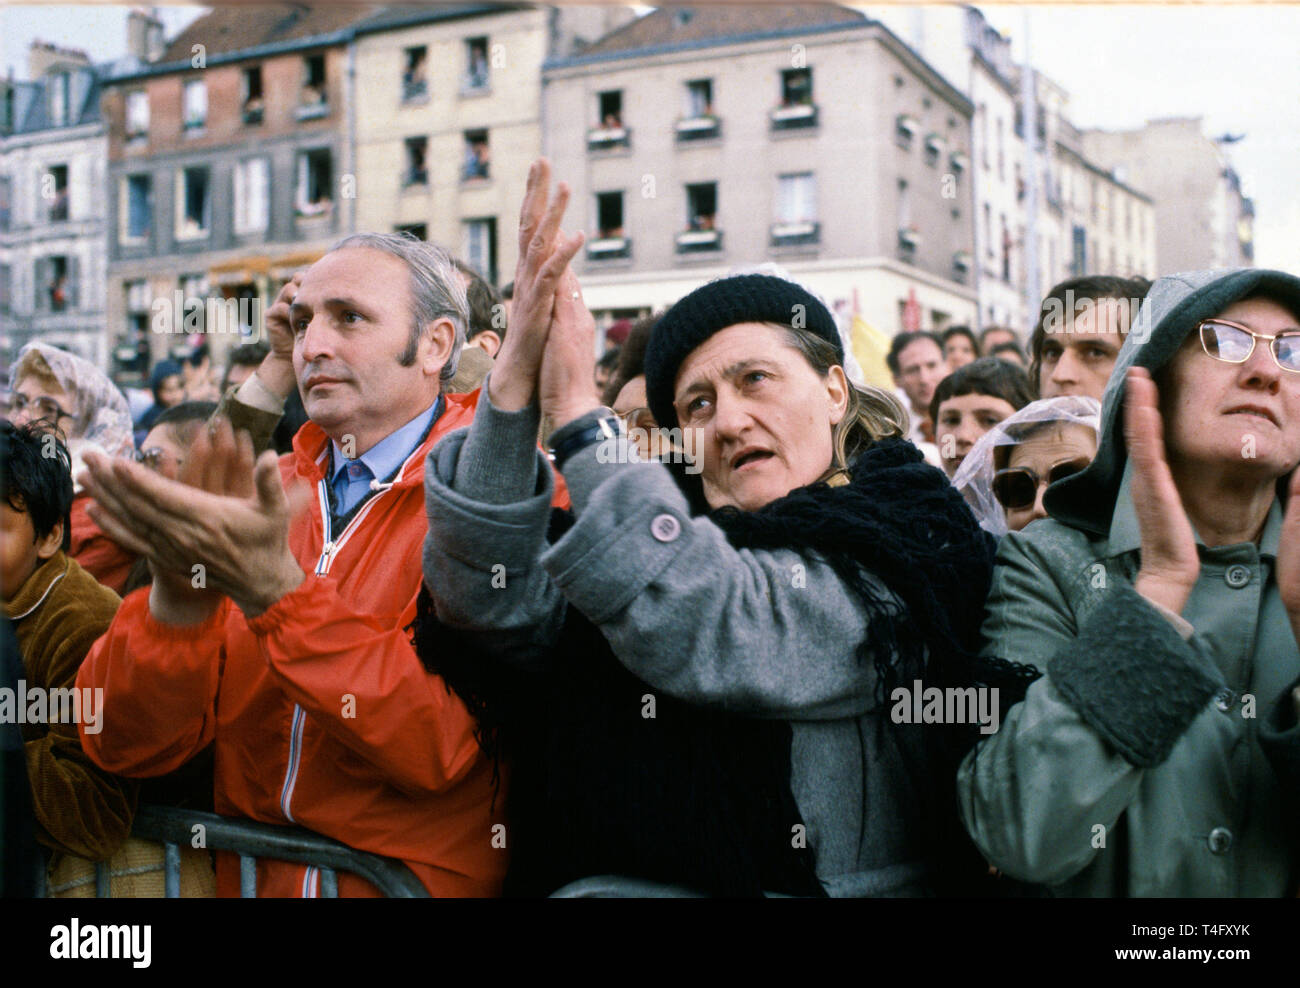 Pilgrims in crowd applaud Pope John Paul II during his visit to Paris, France Stock Photo